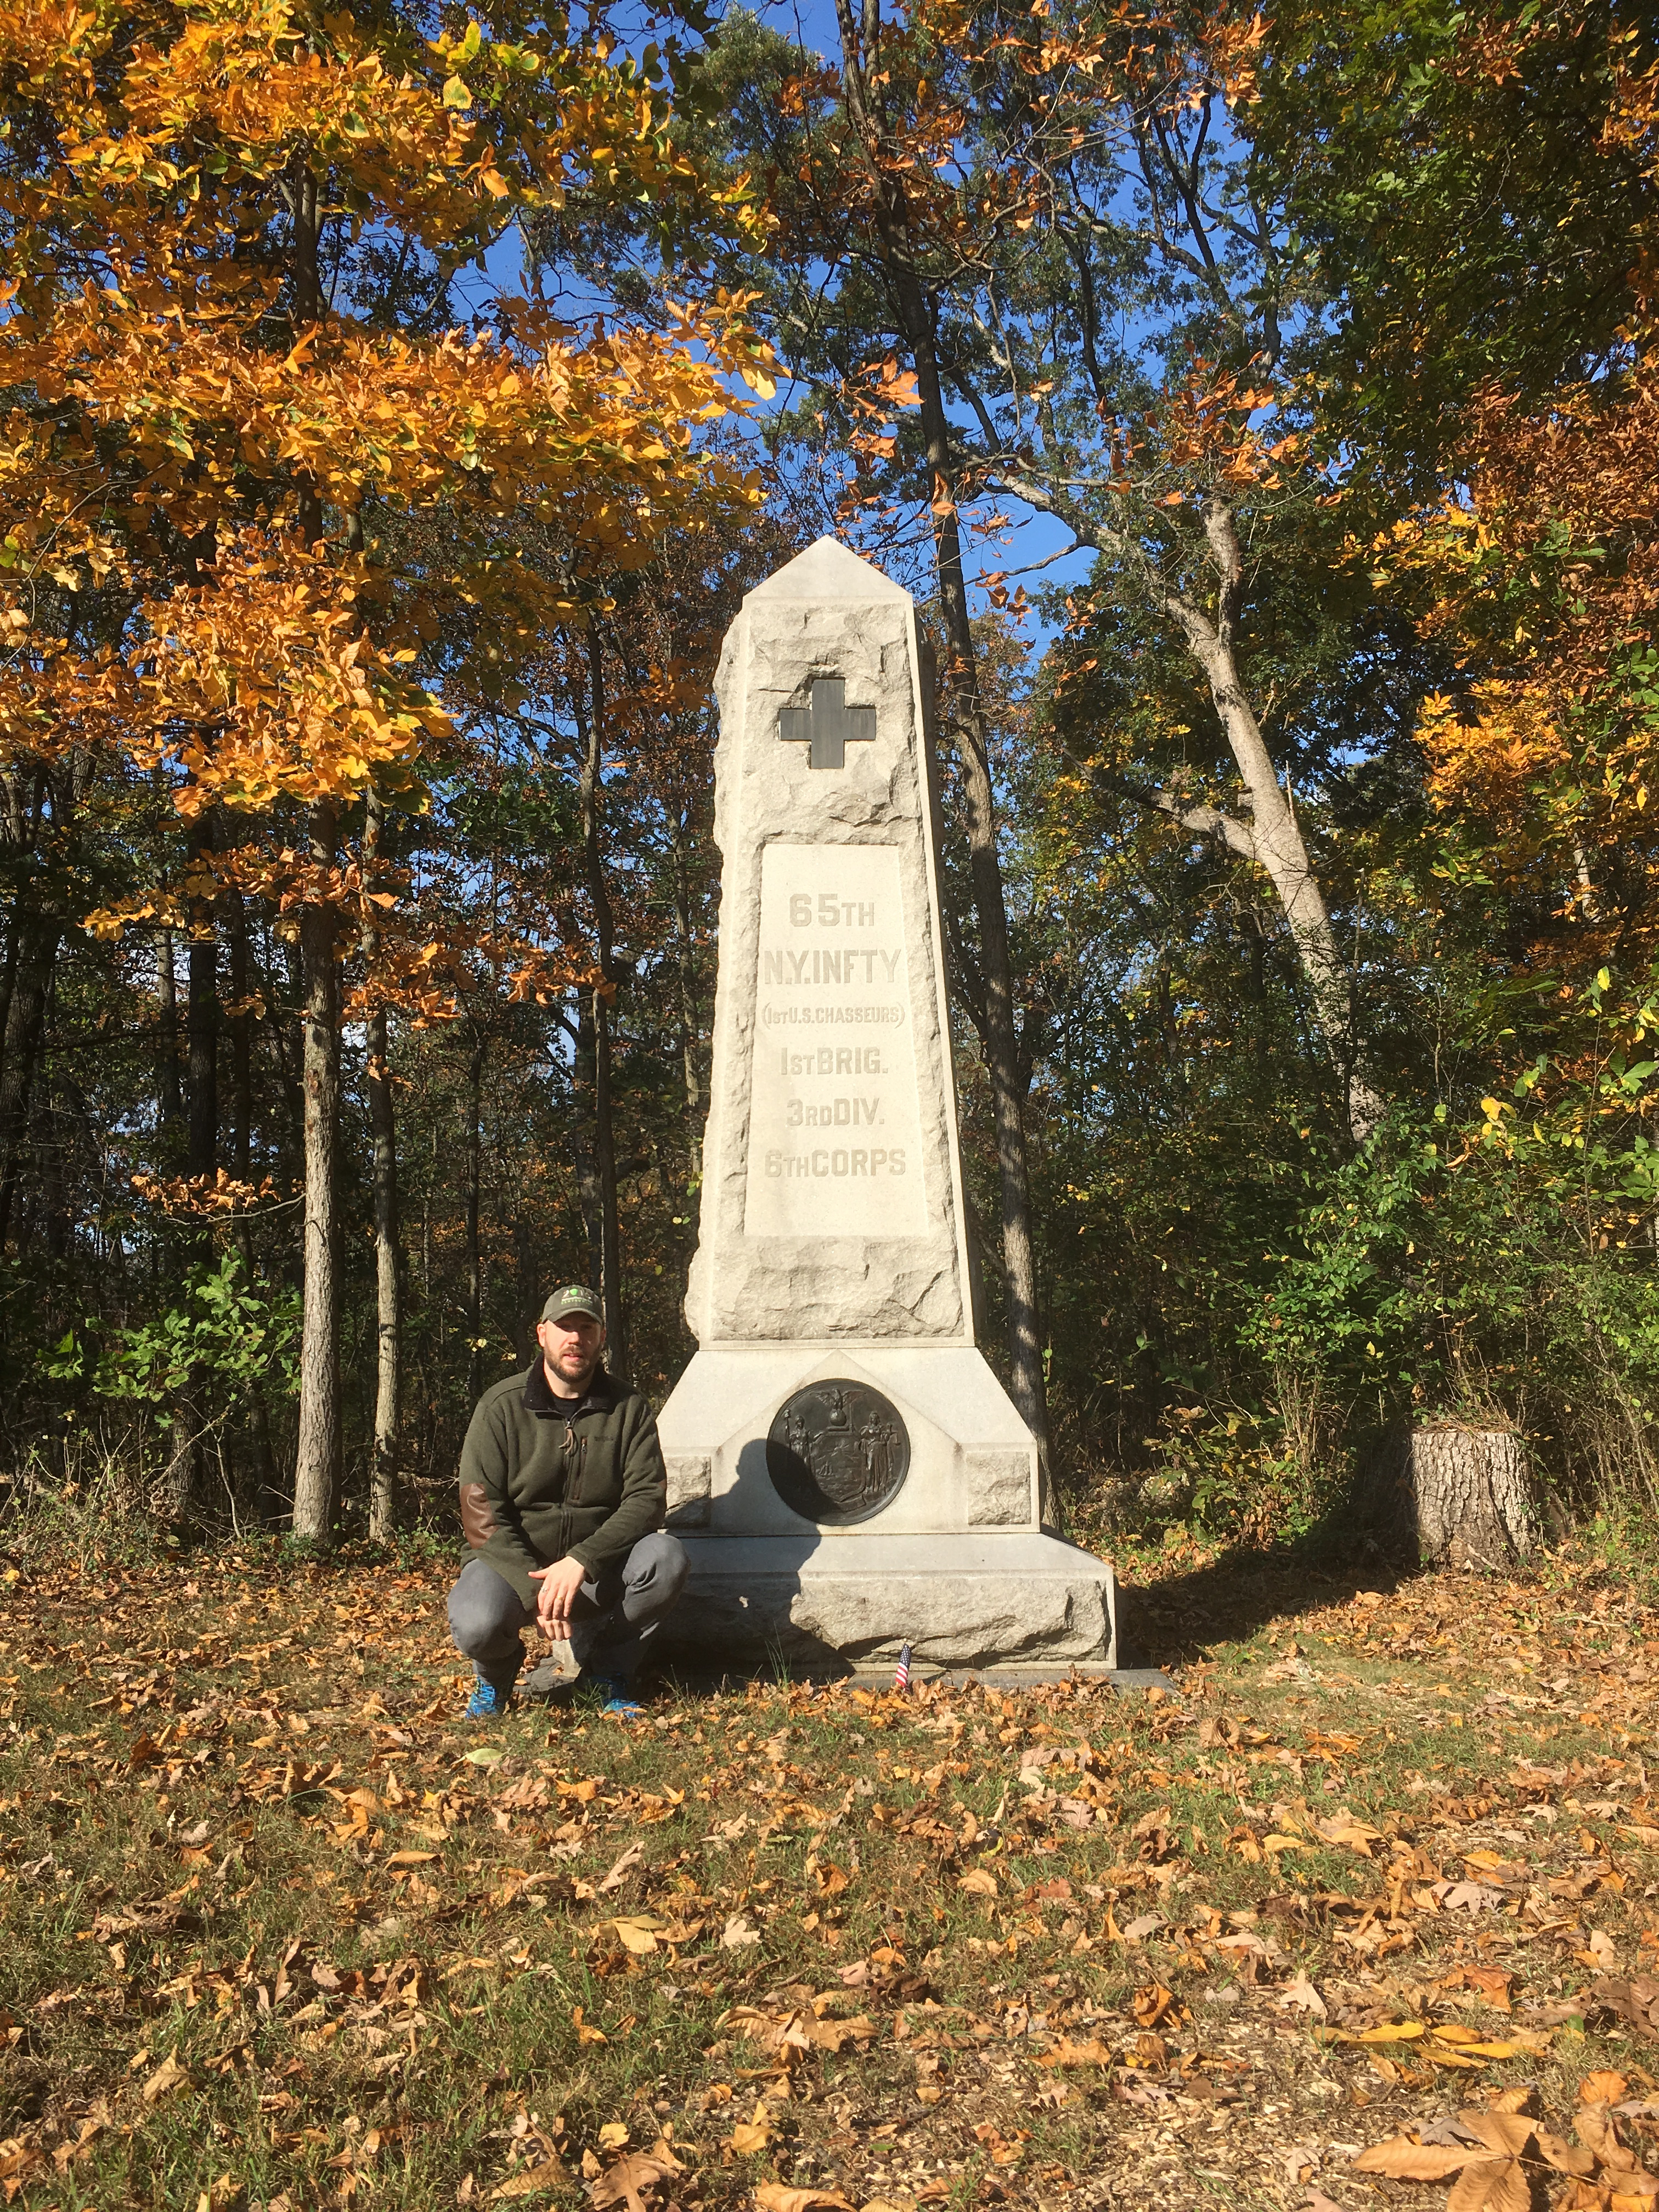 The monument to the 65th New York at Culp's Hill, Gettysburg, which I took the opportunity to visit on my recent trip. Both John Clark and John O'Brien died as a result of artillery bombardment not far from this spot (Damian Shiels)